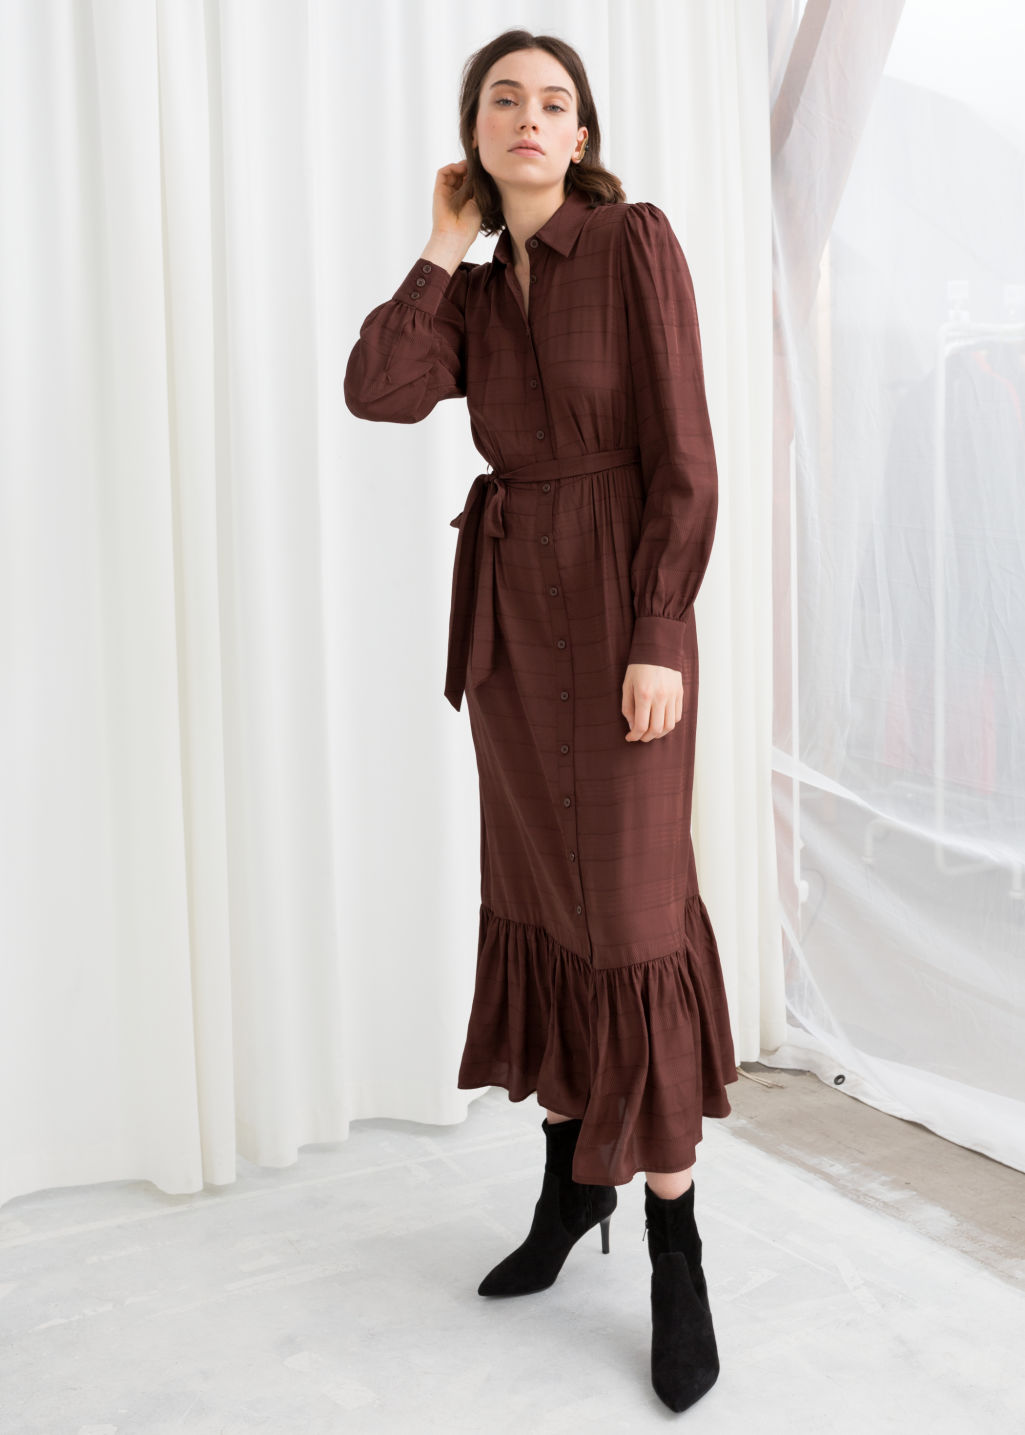 1bbbfe9e8ed8 Belted Ruffle Midi Dress - Burgundy - Maxi dresses -   Other Stories